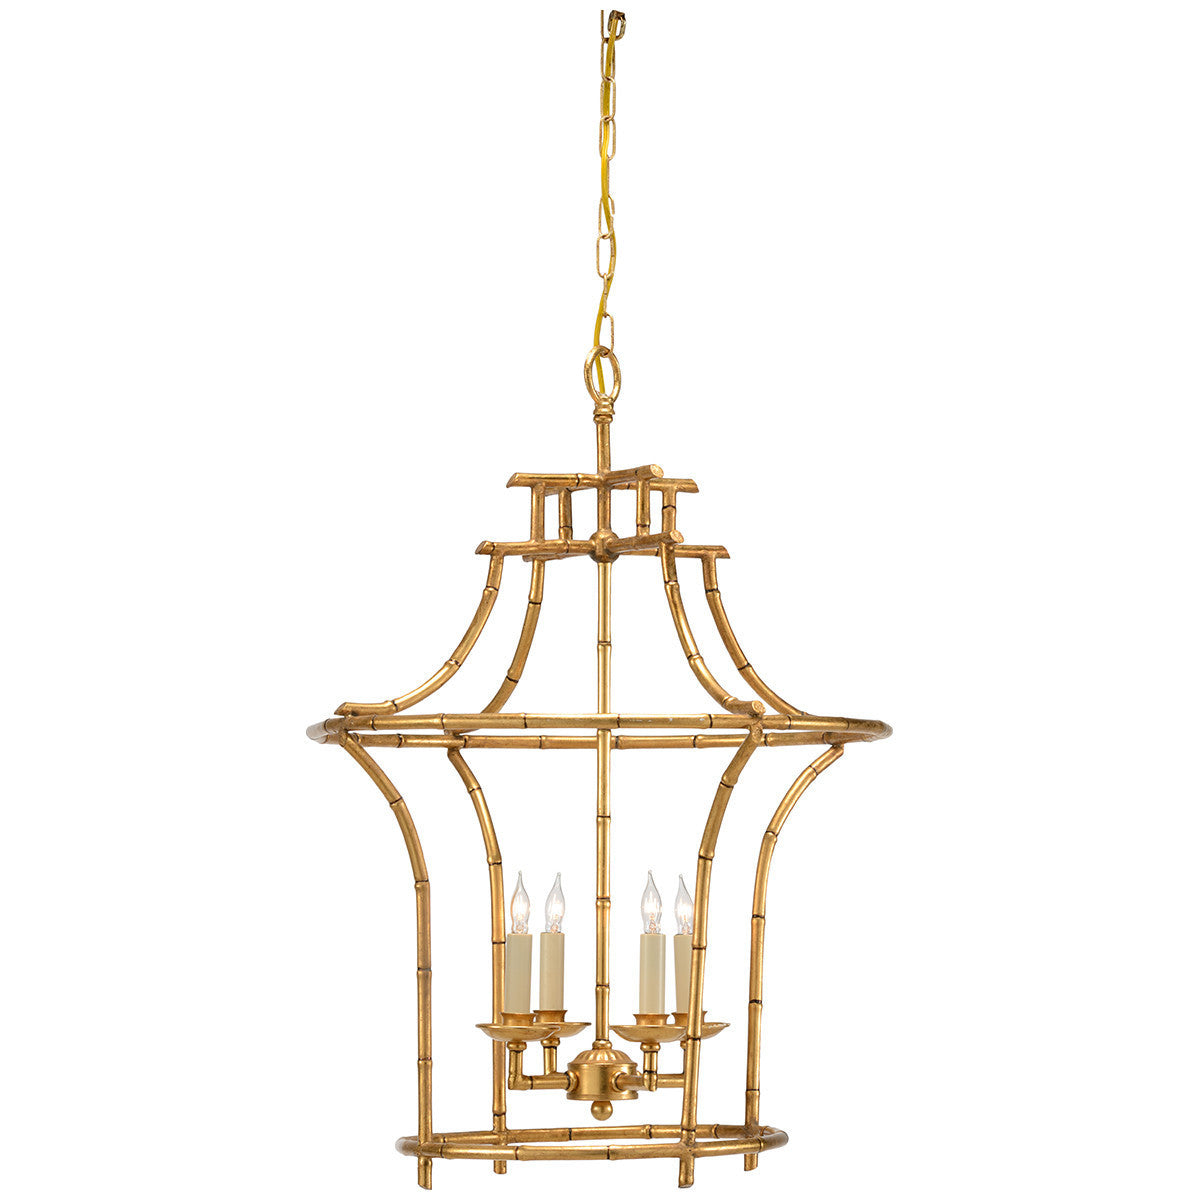 Ceiling lights gore dean home bamboo antique gold chandelier gdh the decorators department store arubaitofo Image collections